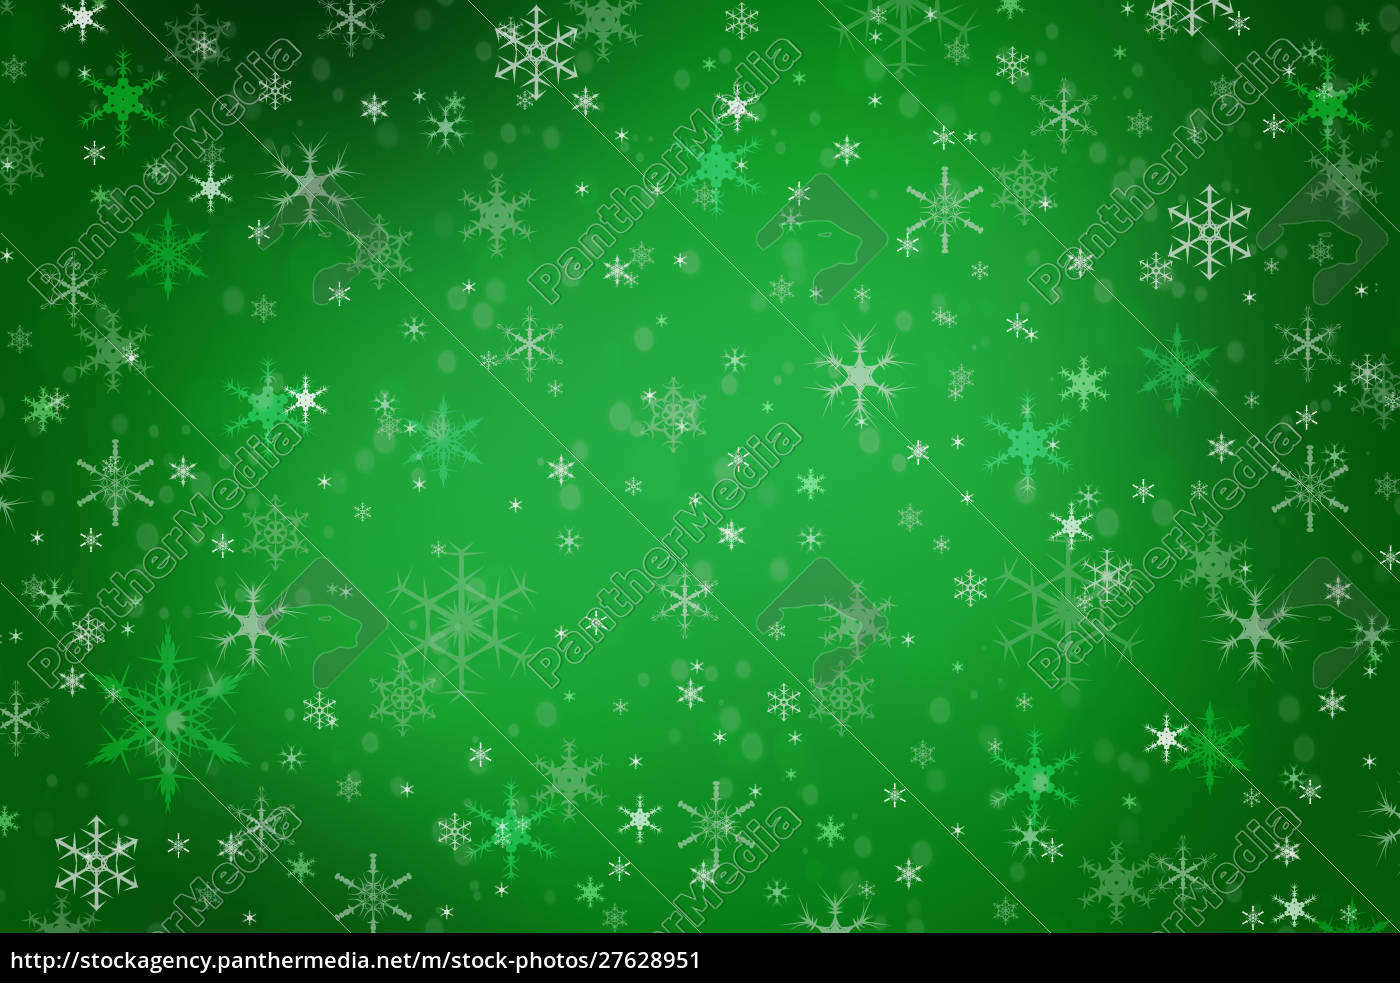 abstract, green, christmas, winter, background - 27628951